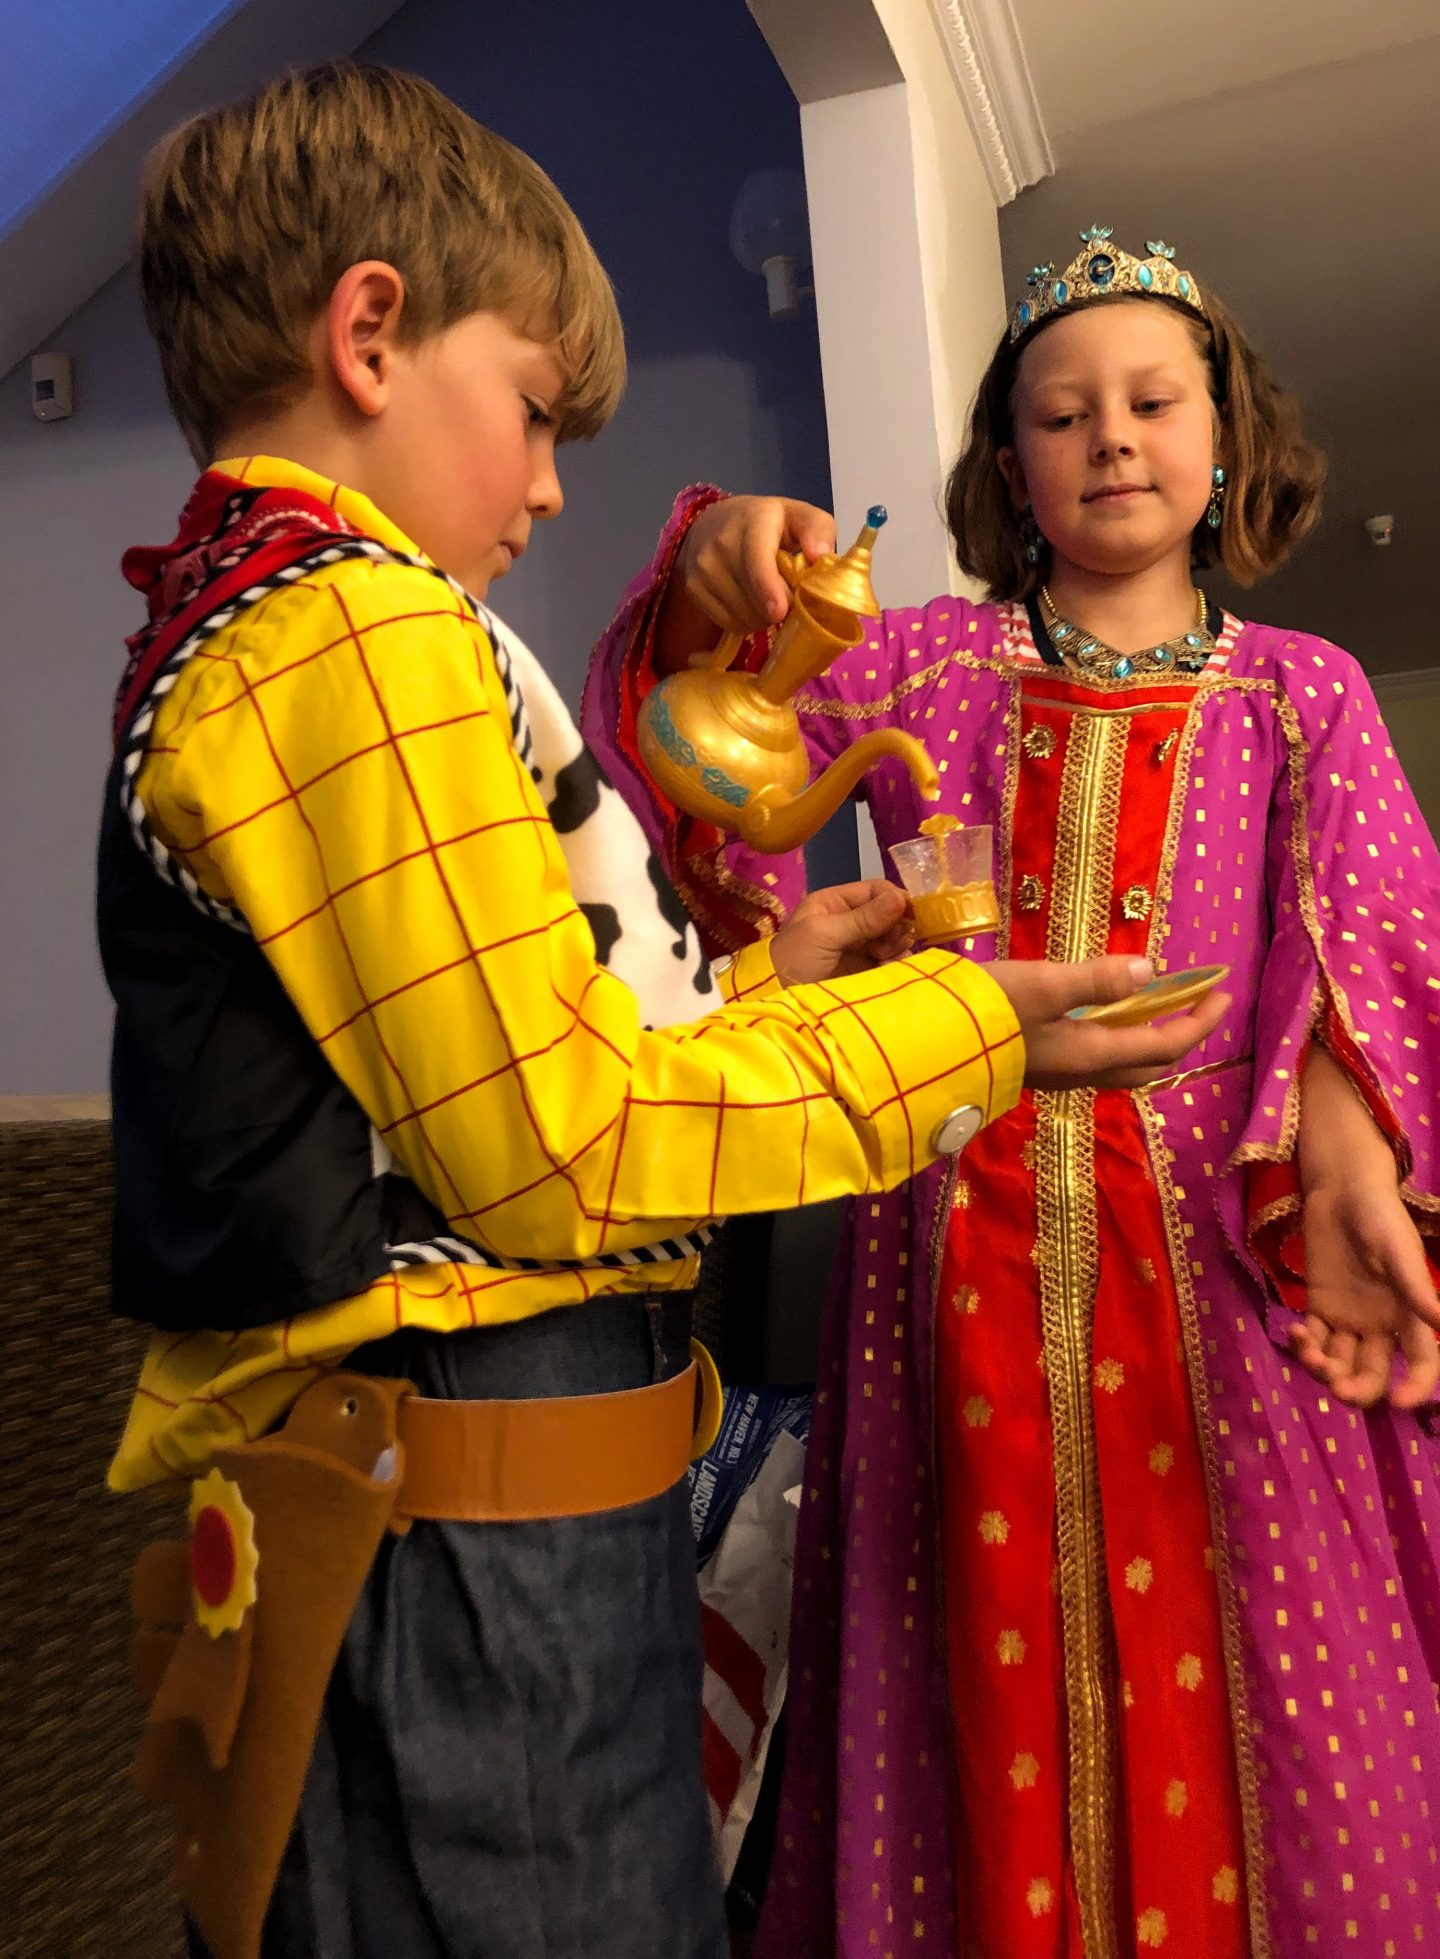 My daughter is dressed as Princess Jasmine and serving tea to my son, dressed as Woody, both costumes from shopDisney.